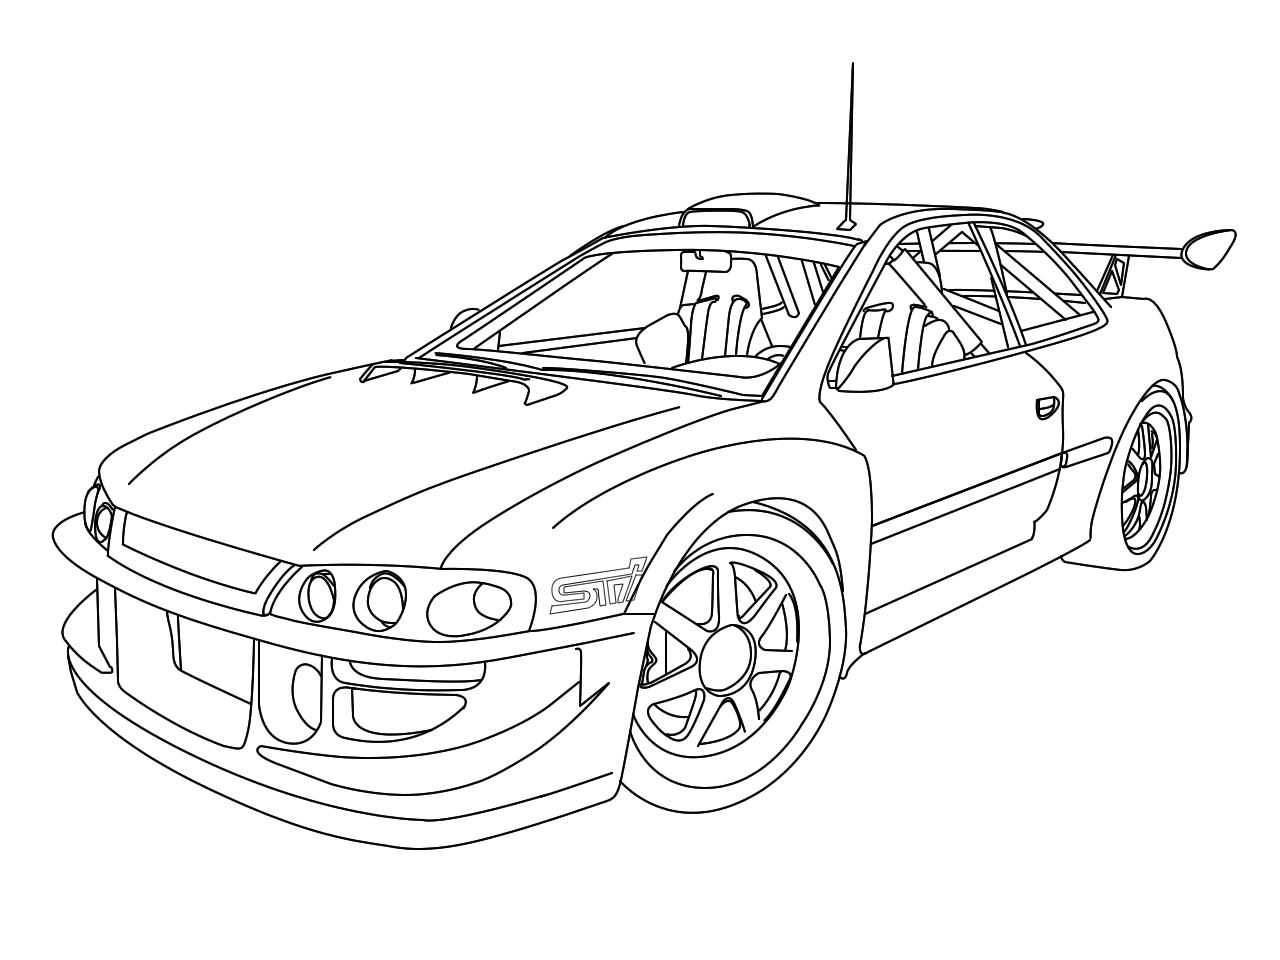 1280x960 outline drawing of car